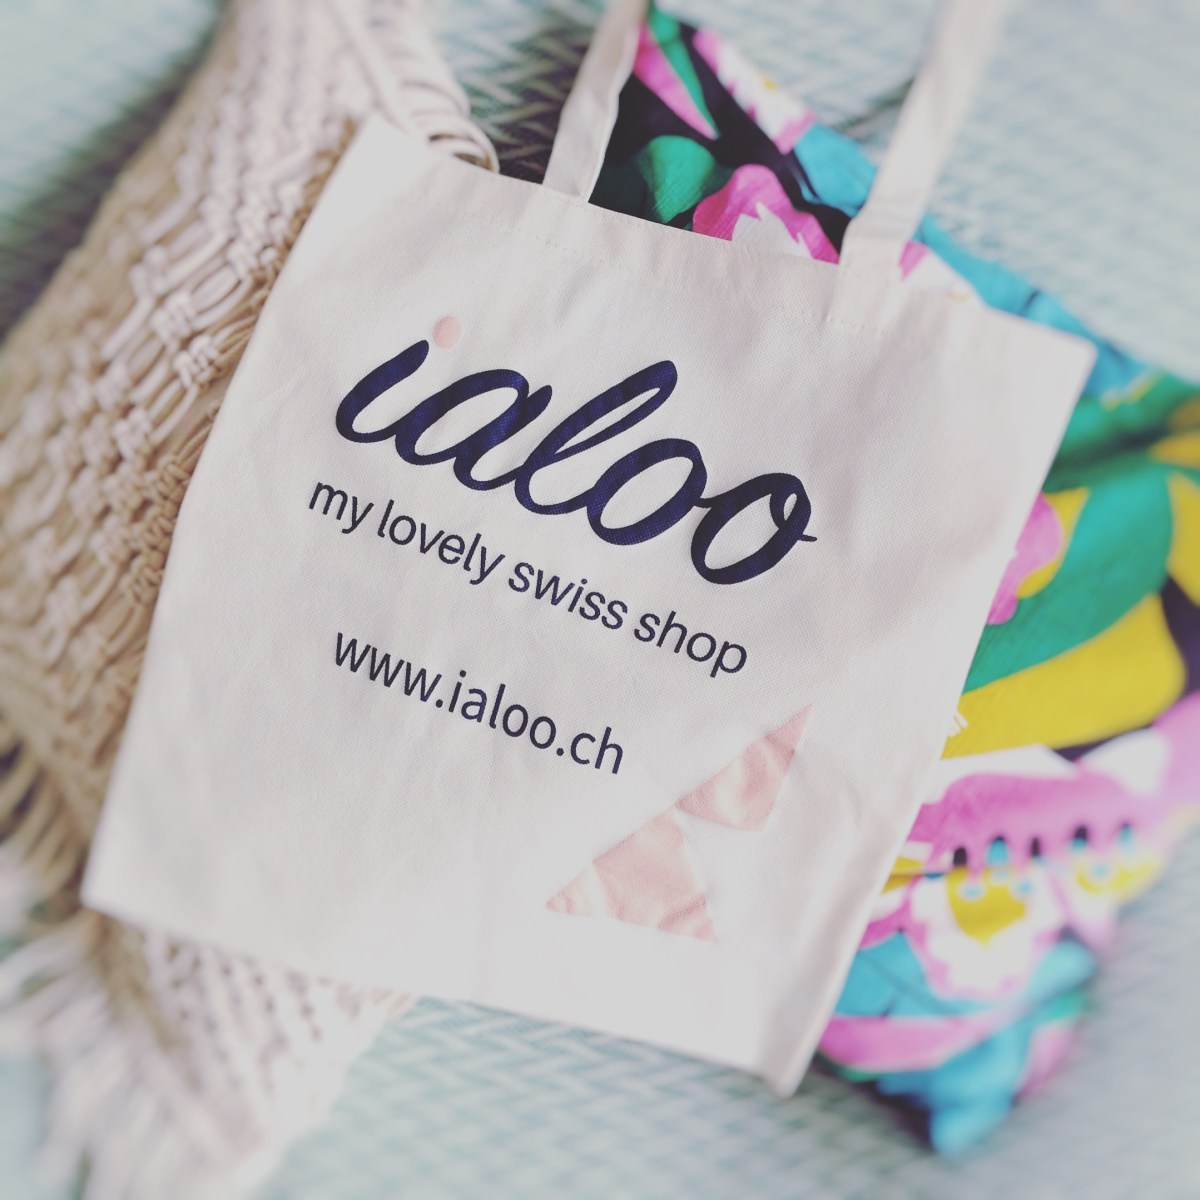 Ialoo artisanat fait main handmade switzerland suisse interview blog thereseandthekids